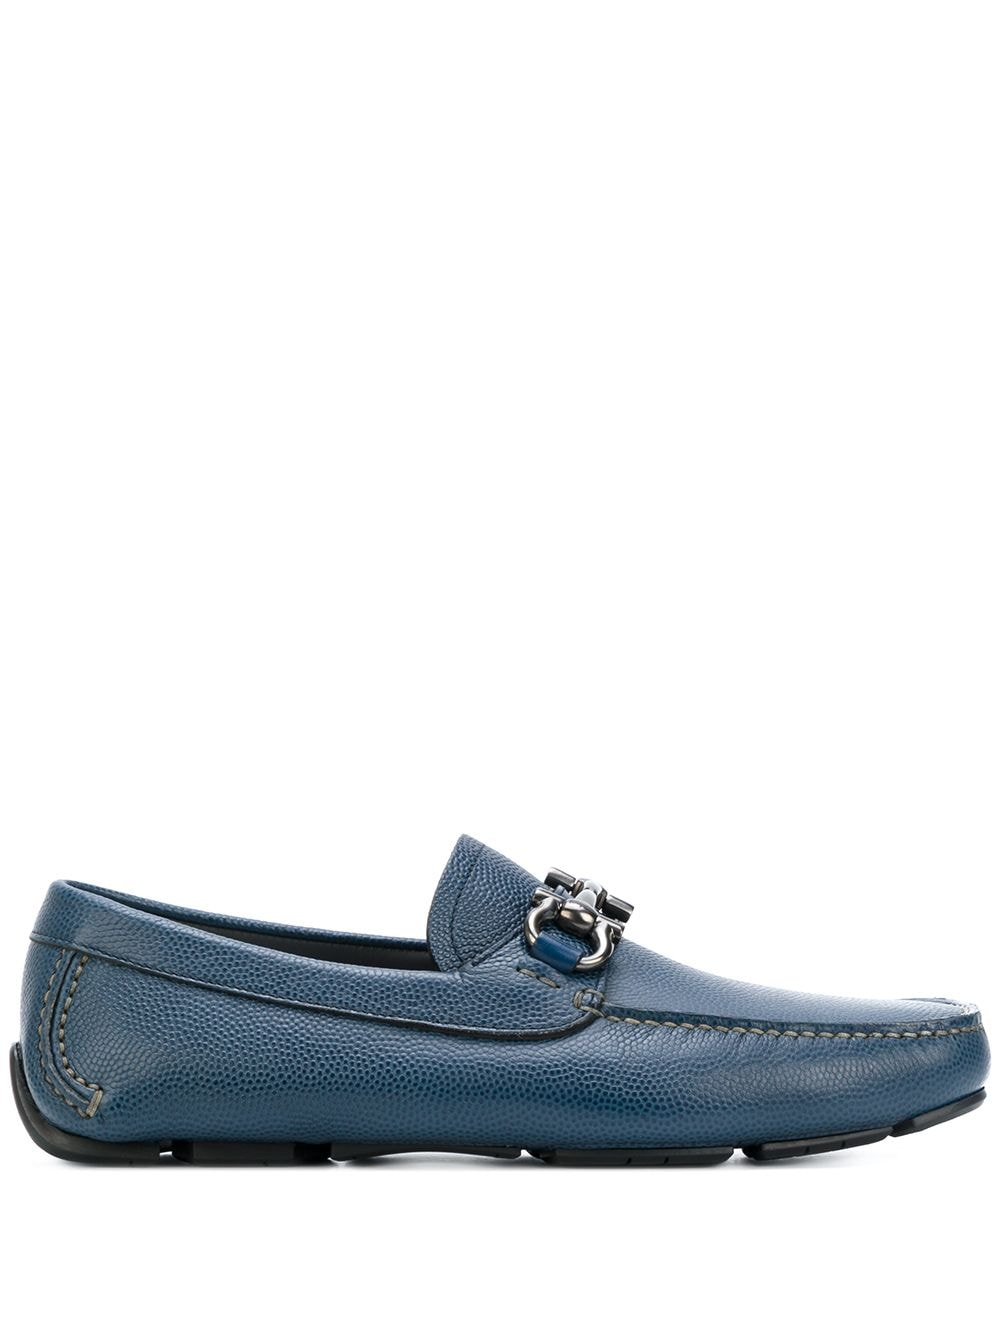 Parigi Leather Loafer